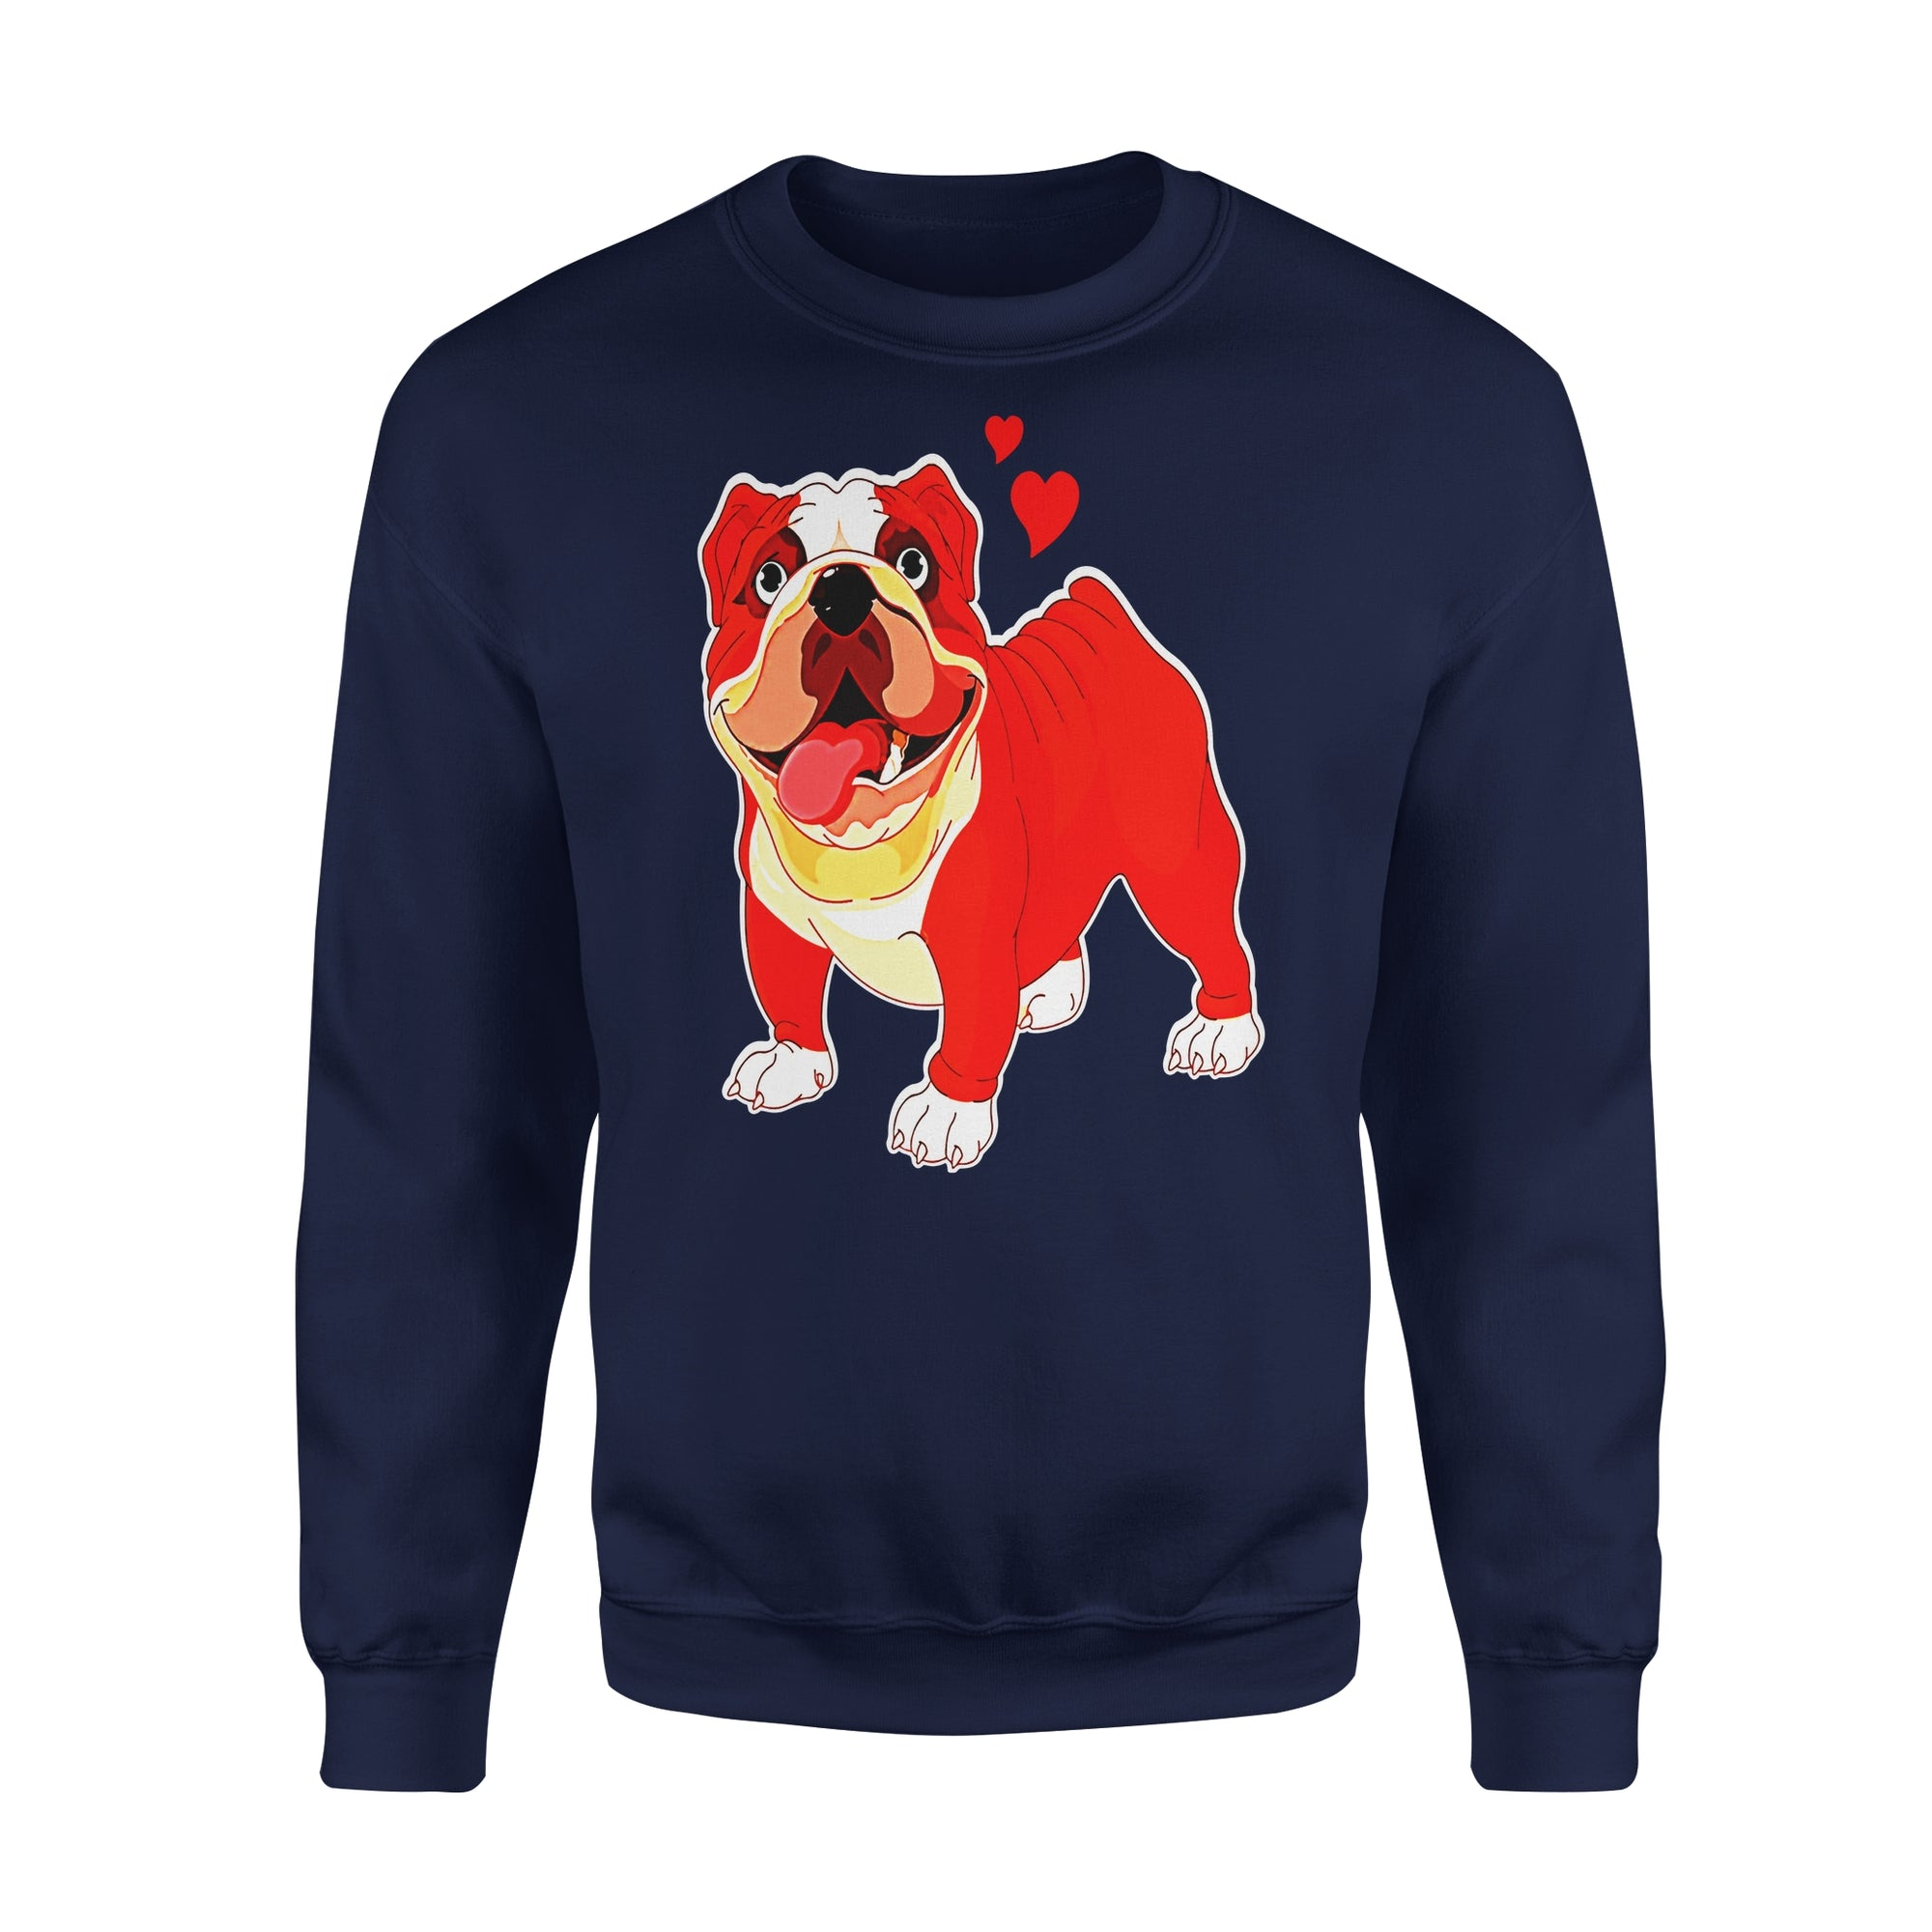 VIRA Premium Fleece Sweatshirt For Bulldog Lovers